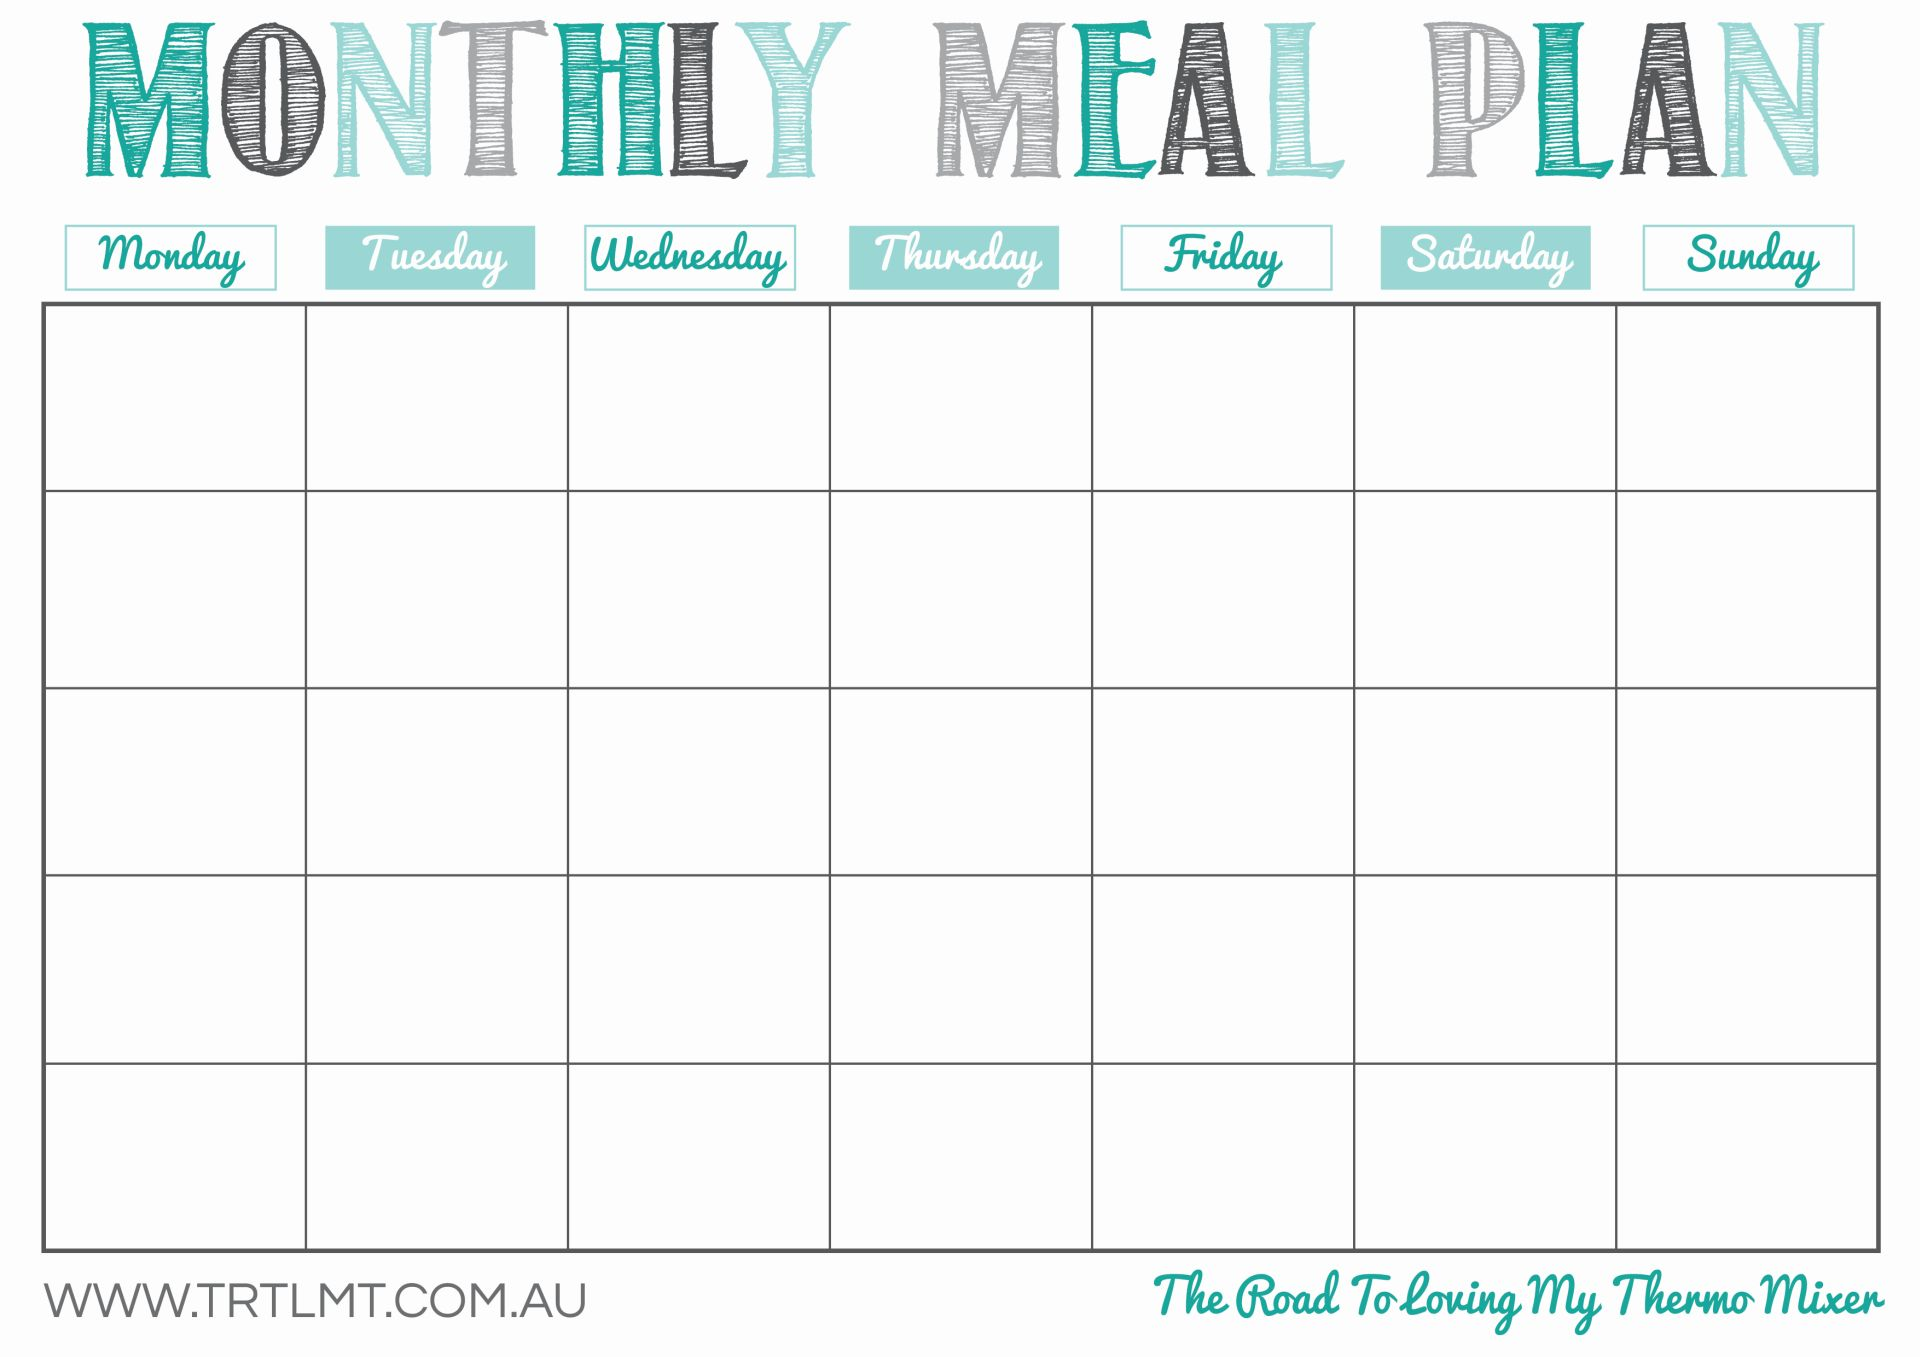 monthly meal calendar   Yelom.agdiffusion.com